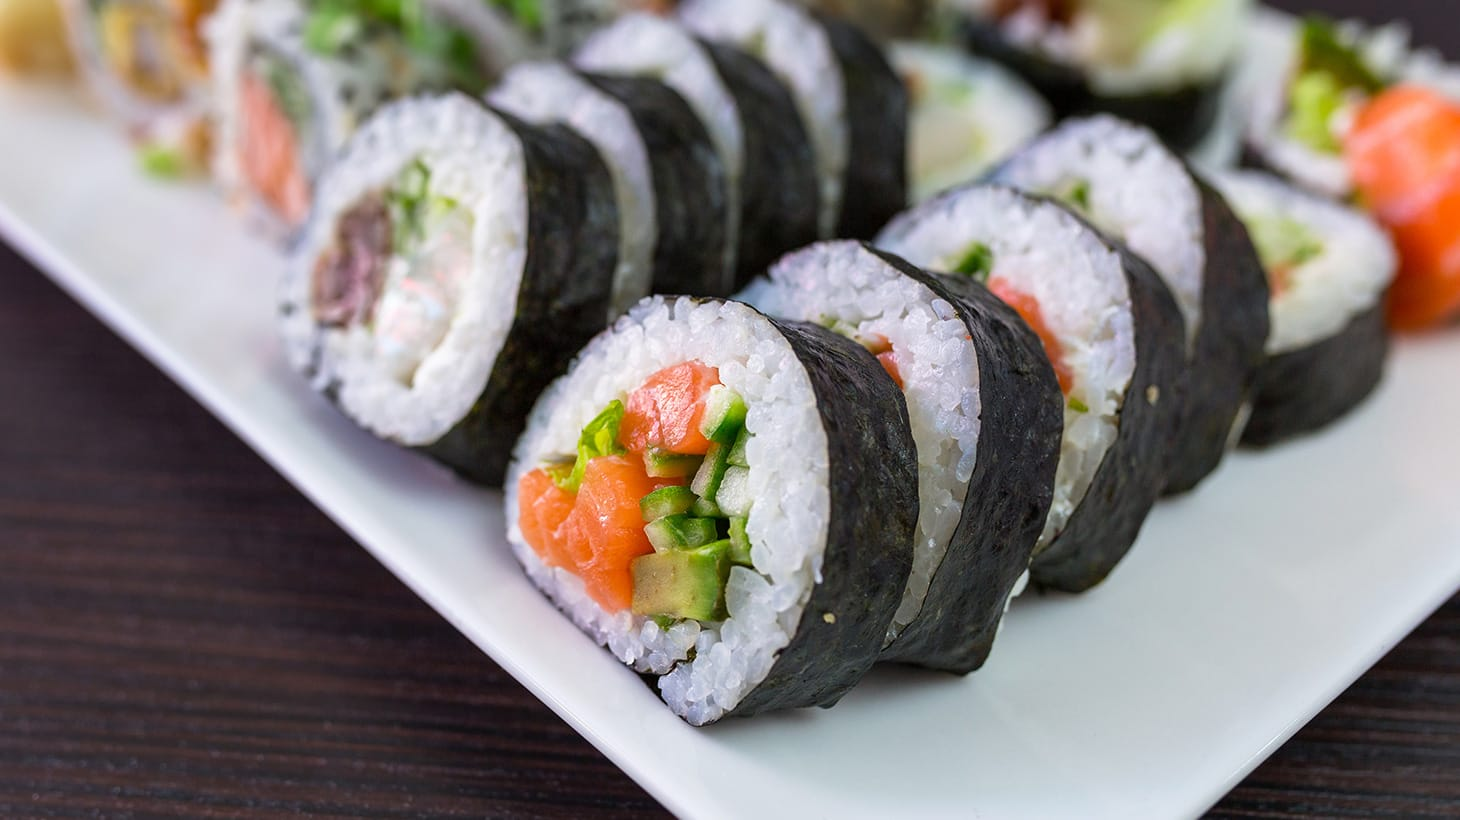 Cater Your Next Party with a Fresh and Delicious Sushi Platter from $25! - Sushi Lian